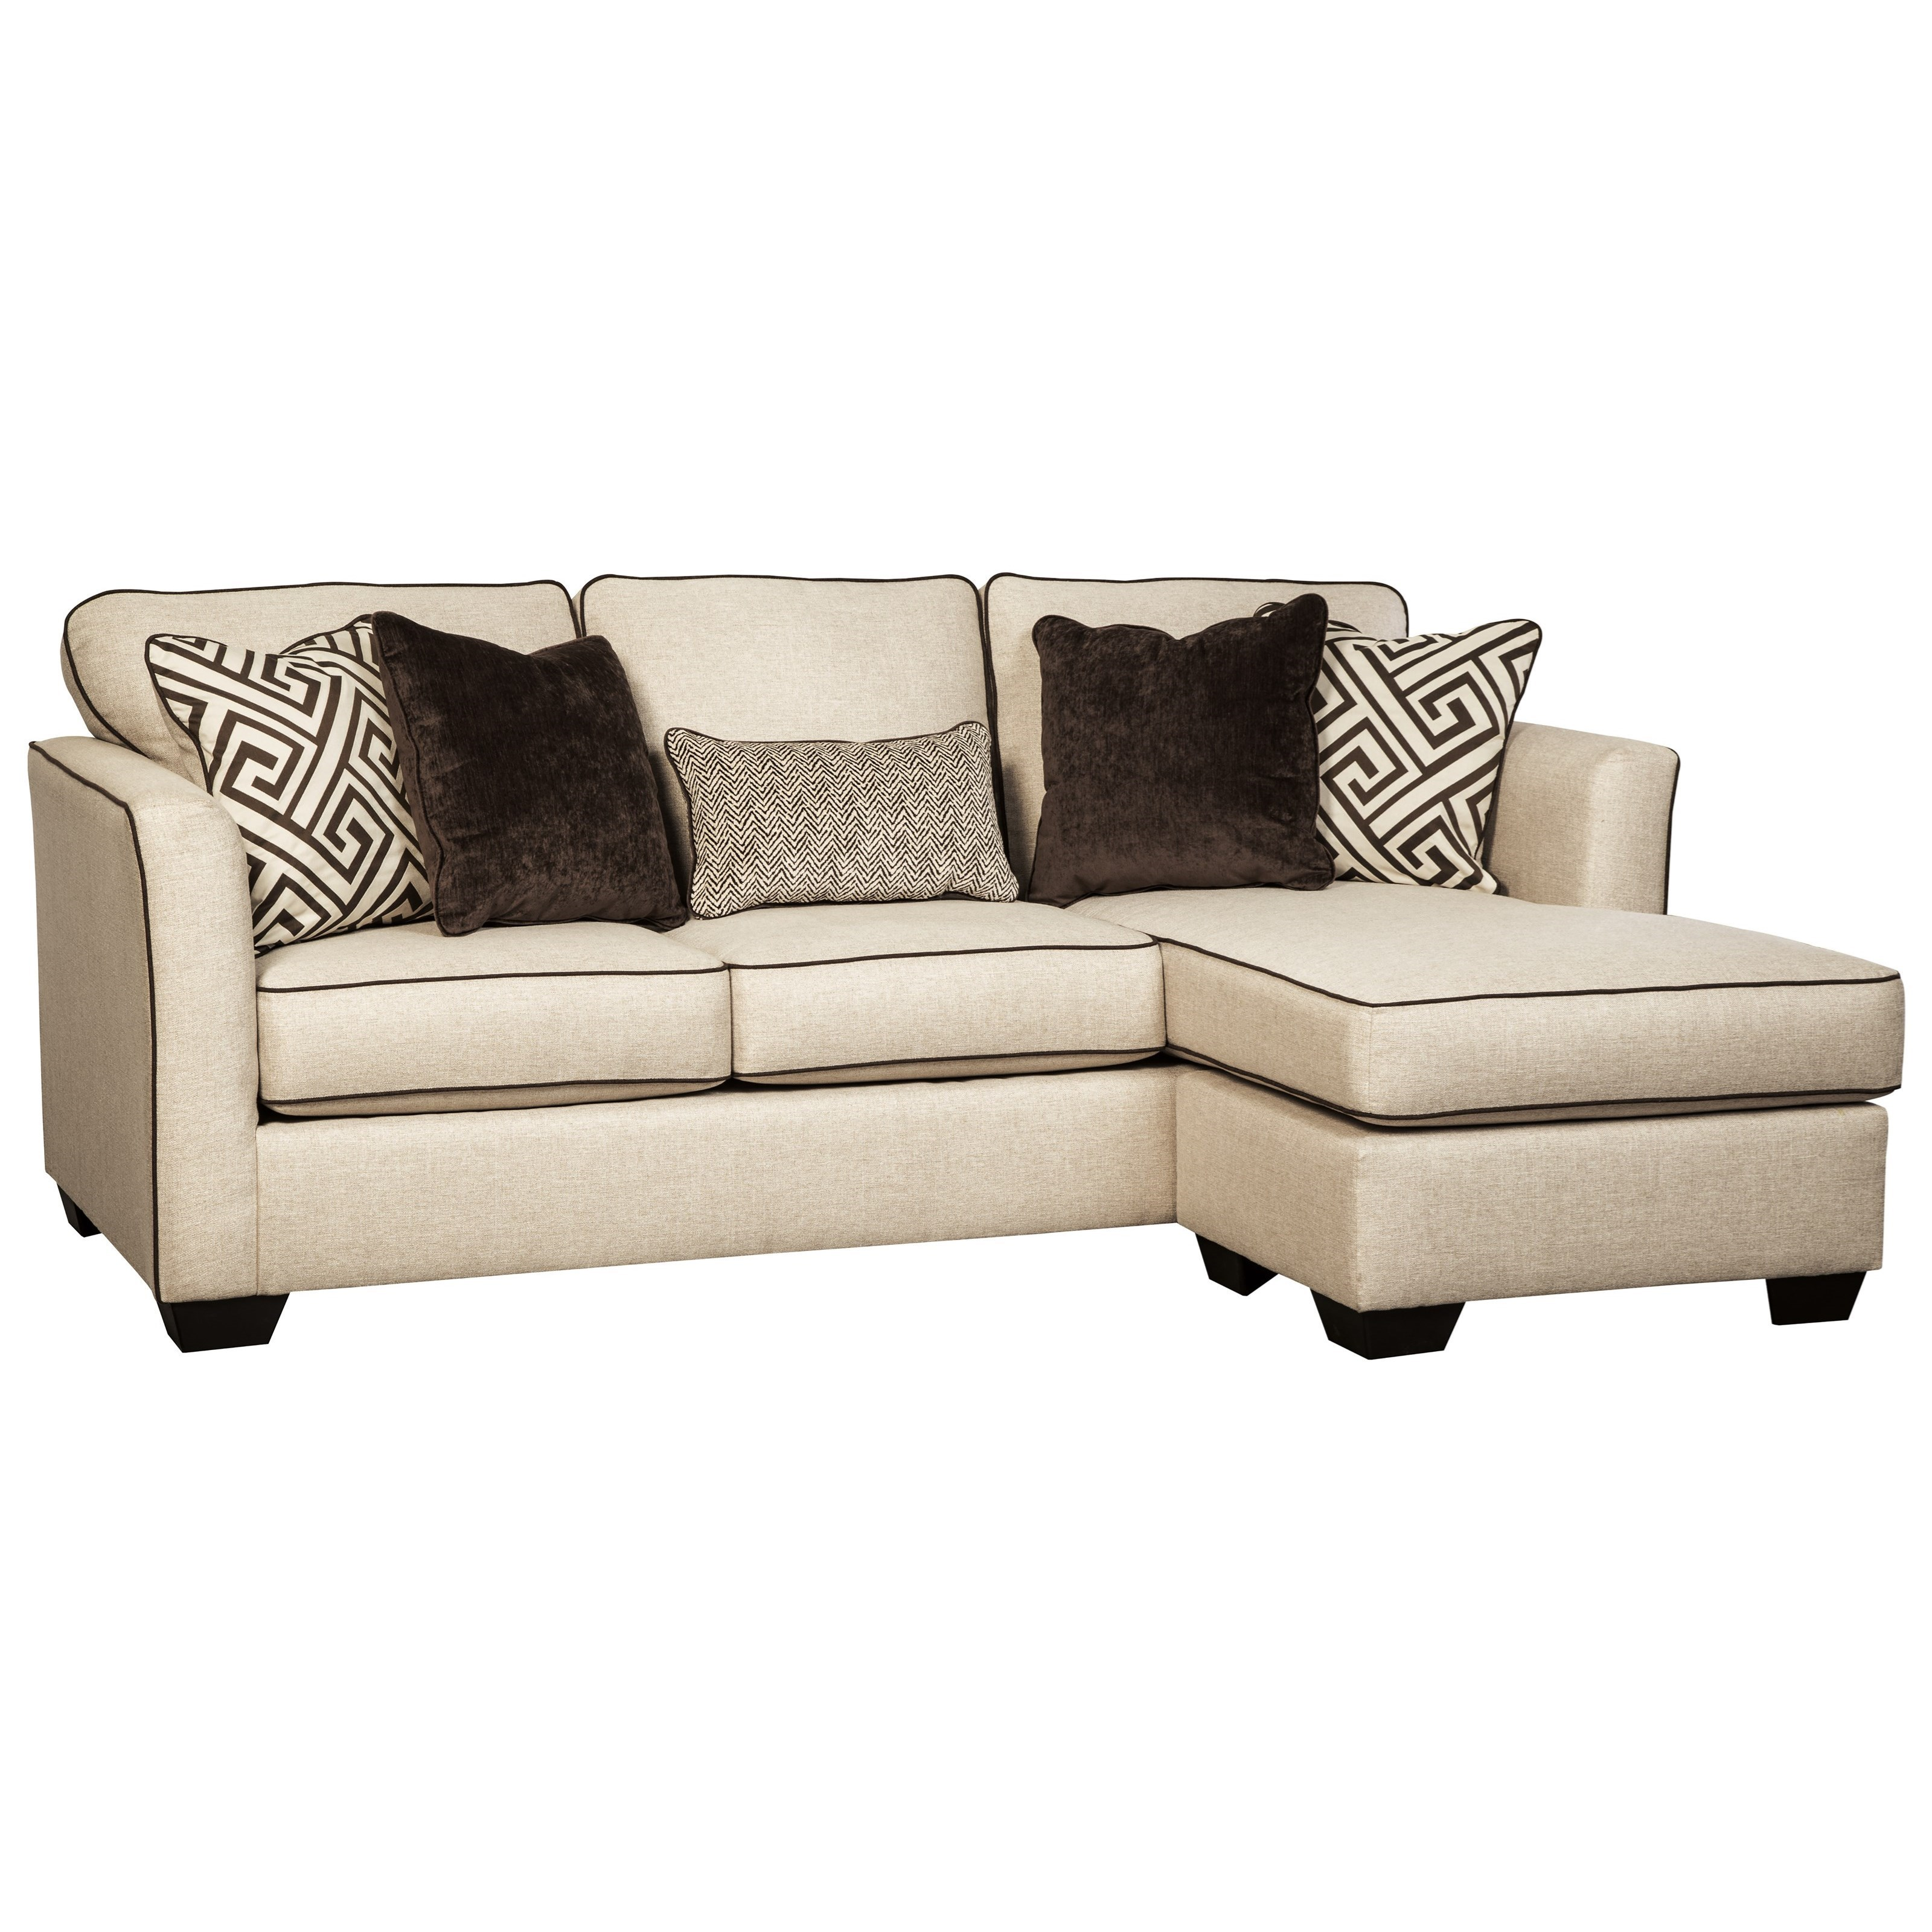 Benchcraft Carlinworth Contemporary Sofa Chaise With Contrast Welts   Becku0027s  Furniture   Sofas